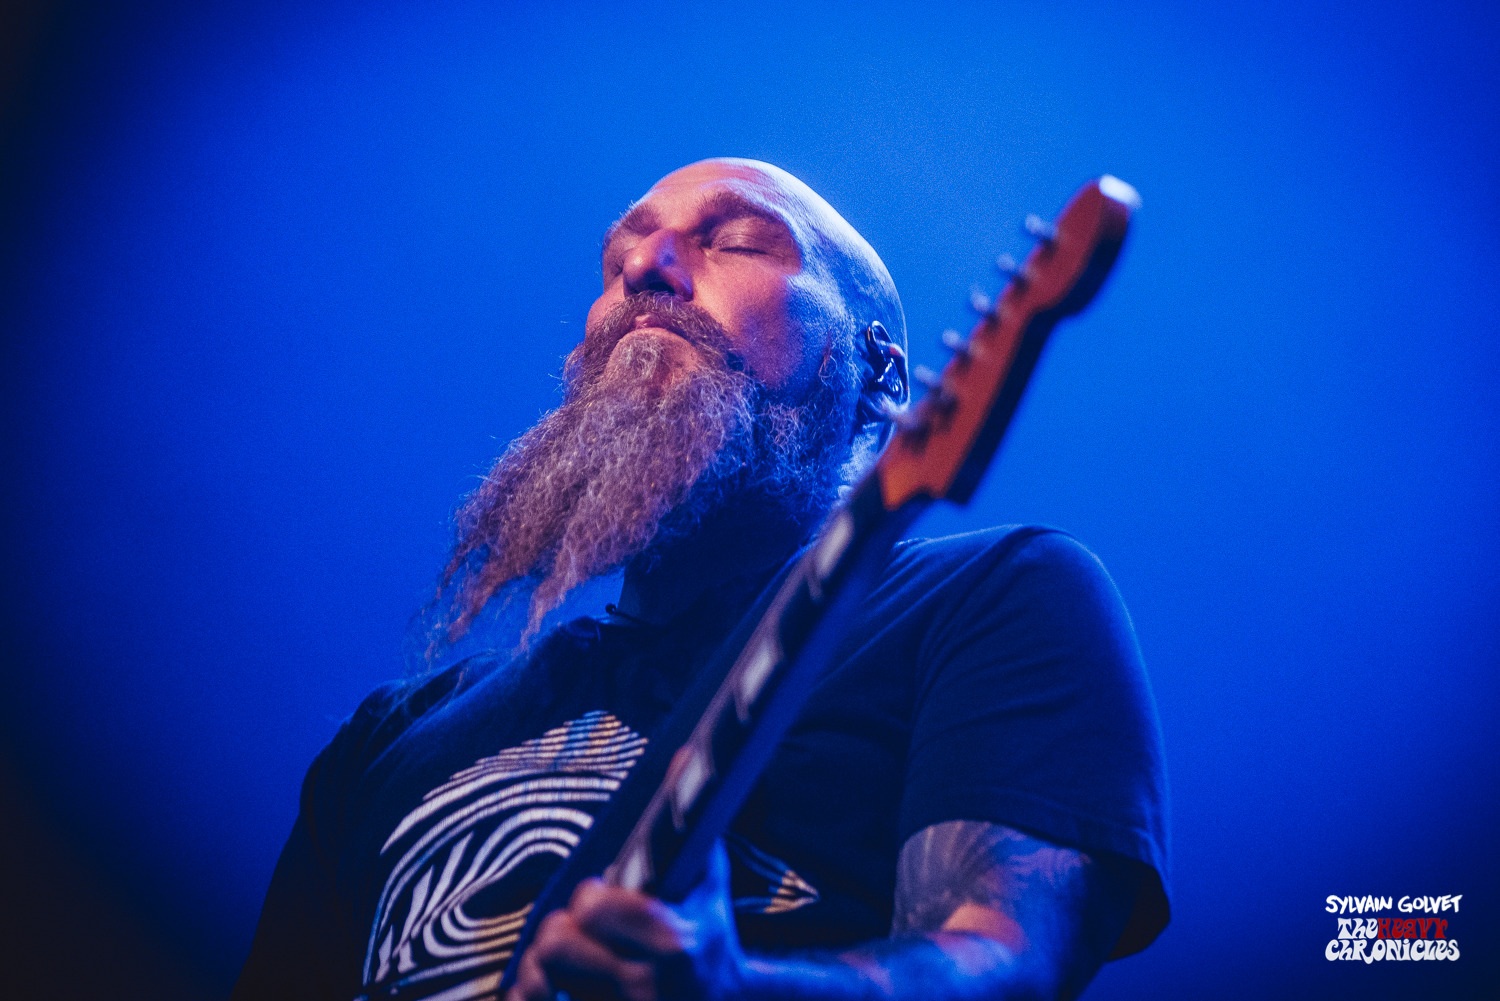 NEUROSIS-BATACLAN-THE-HEAVY-CHRONICLES-180719-1